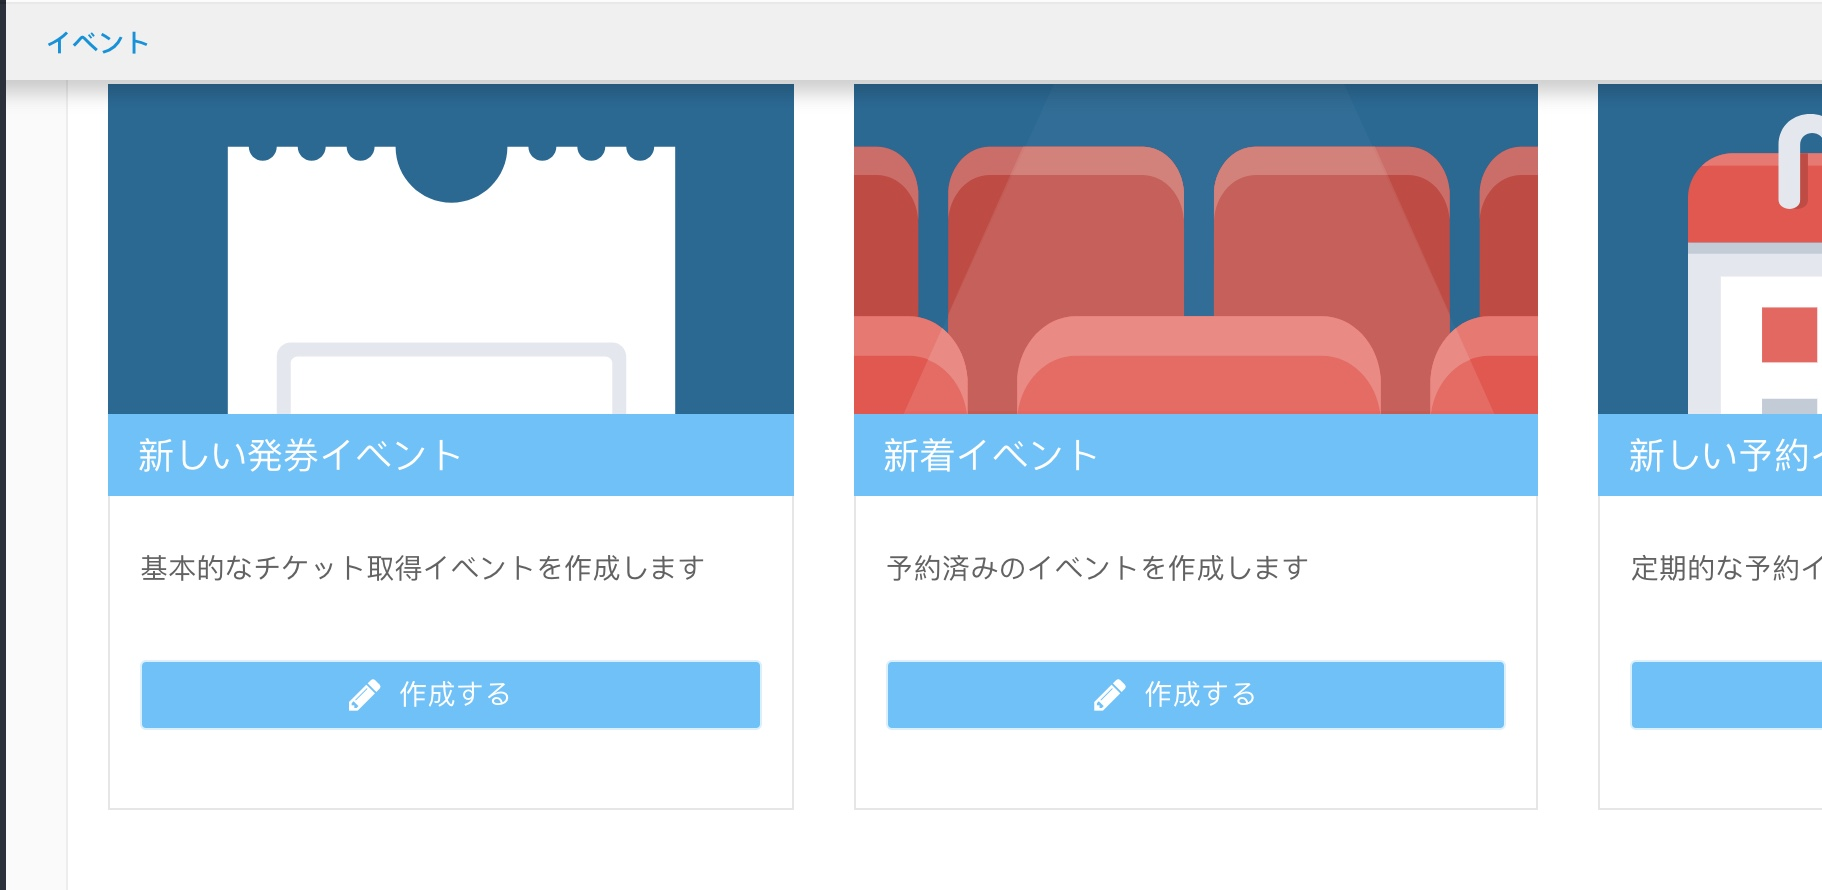 An example showing Multi-Language Support in SaaS Platforms